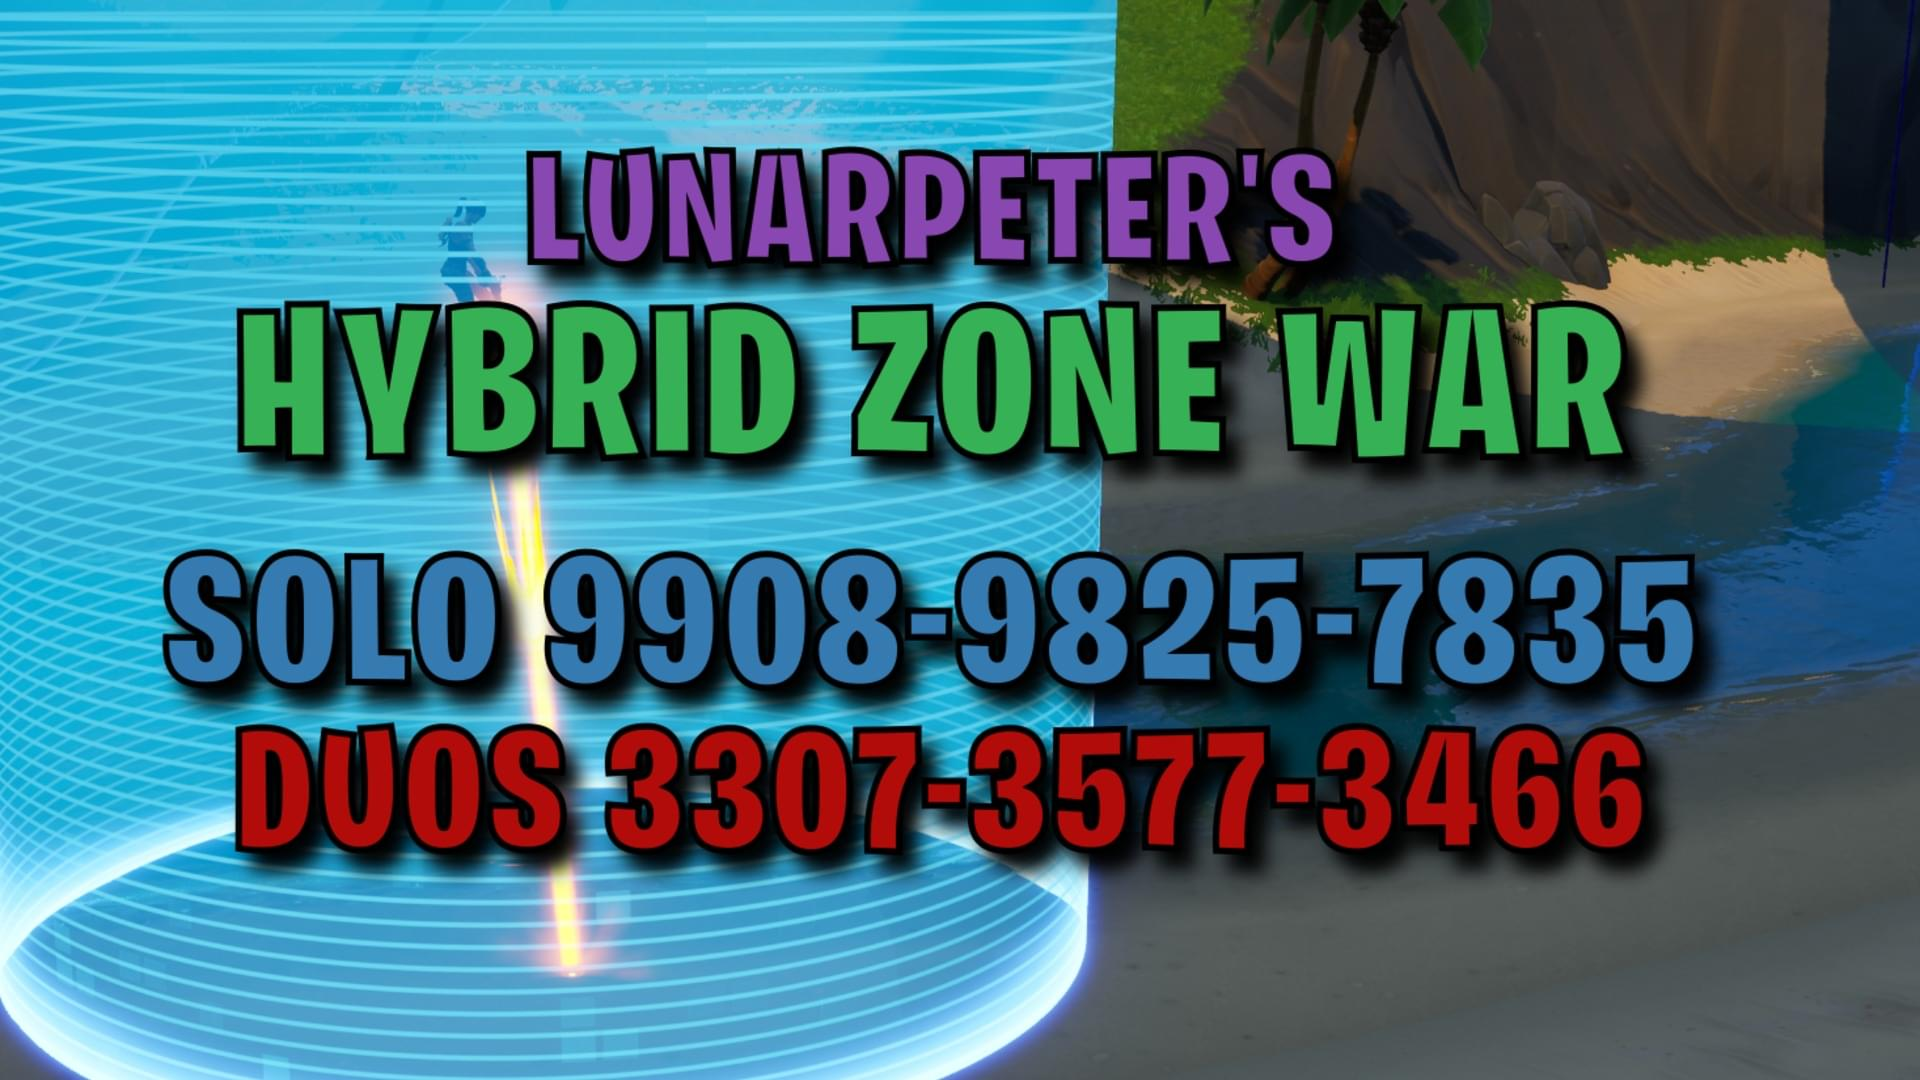 Fortnite Creative Hybrid Zone Wars Duos 1 4 By Lunarpeter